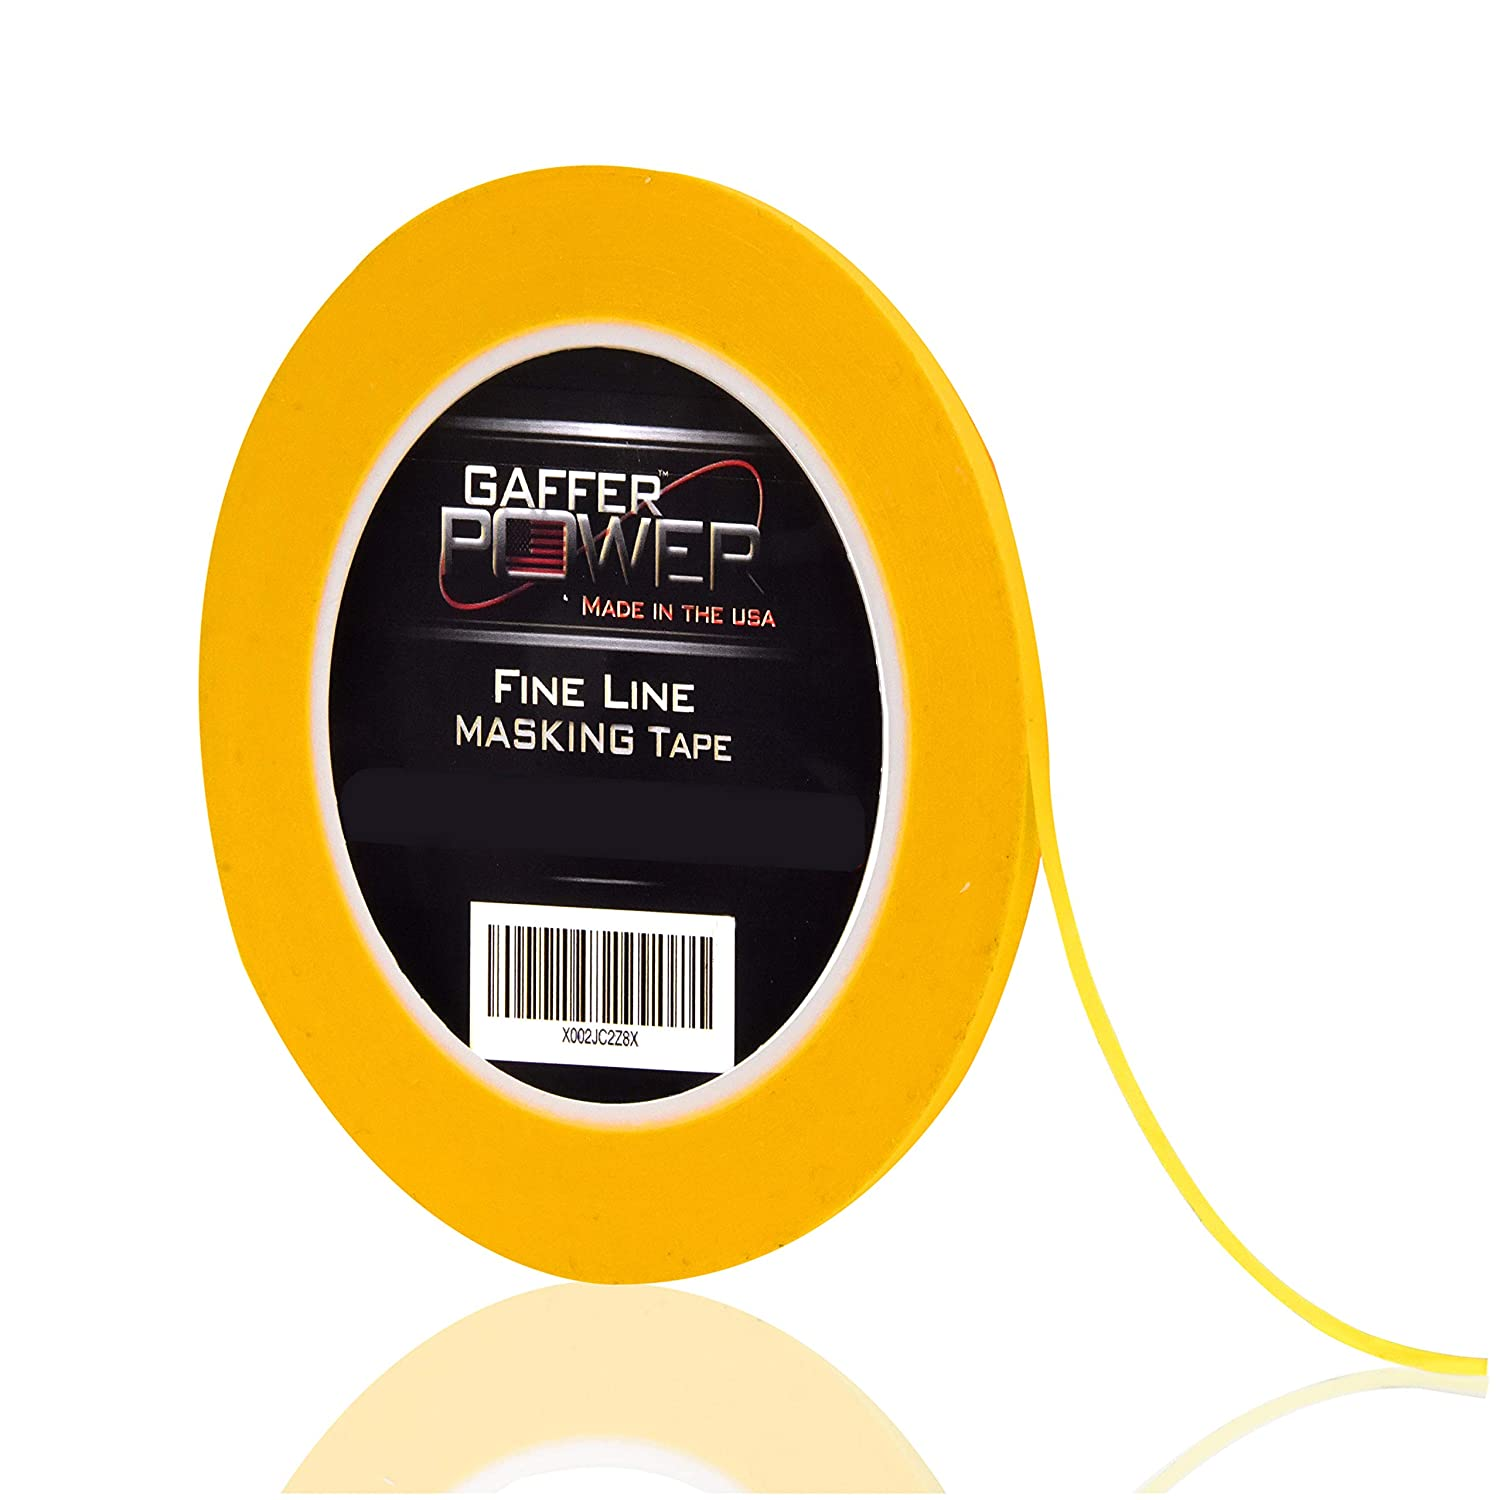 Fine Line Tape Pin online shop Striping Made Quality for Cars USA All items free shipping